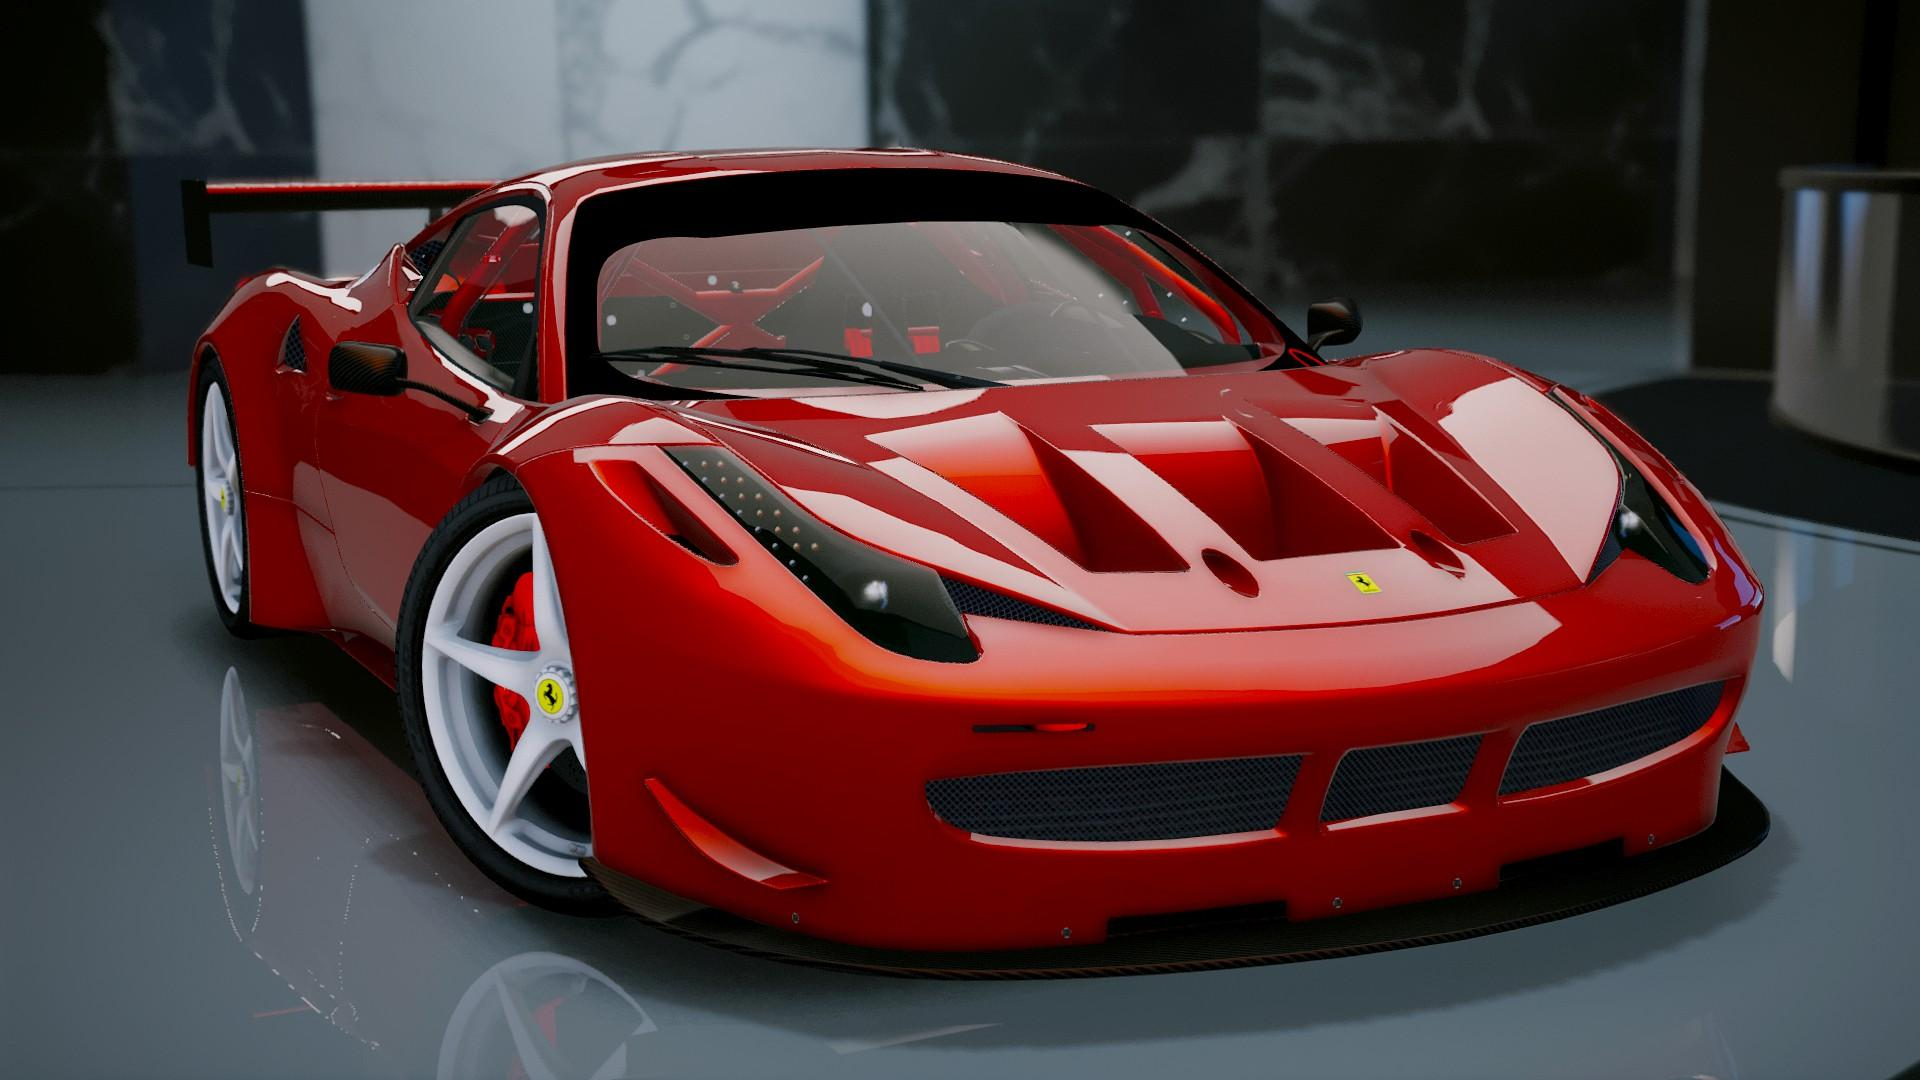 Ferrari 458 Italia GT2 [Add-On | Tuning] - GTA5-Mods.com